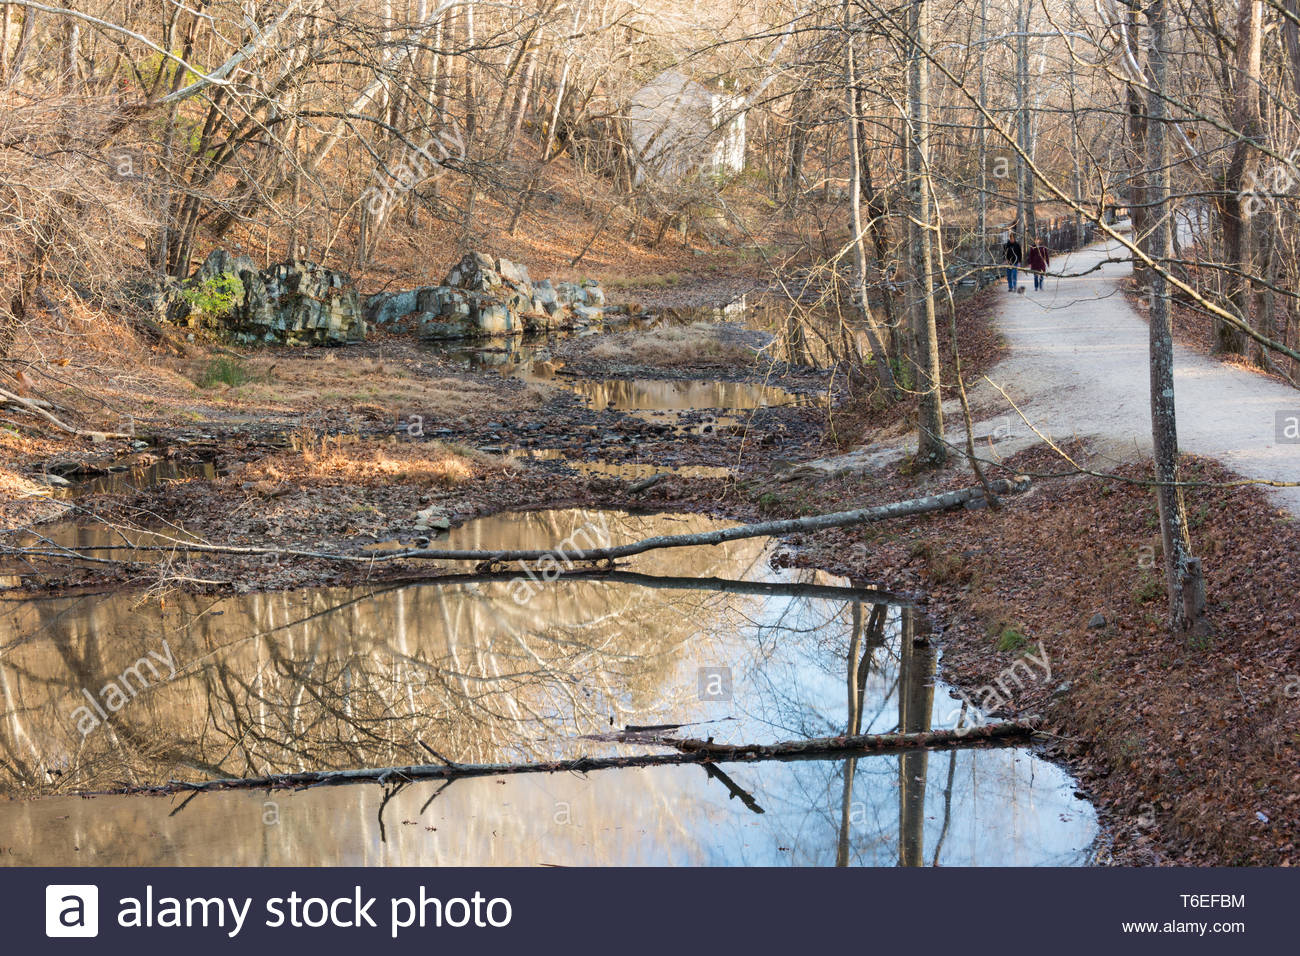 The C&O Canal with towpath and old lock house in the background, Potomac, Maryland. - Stock Image